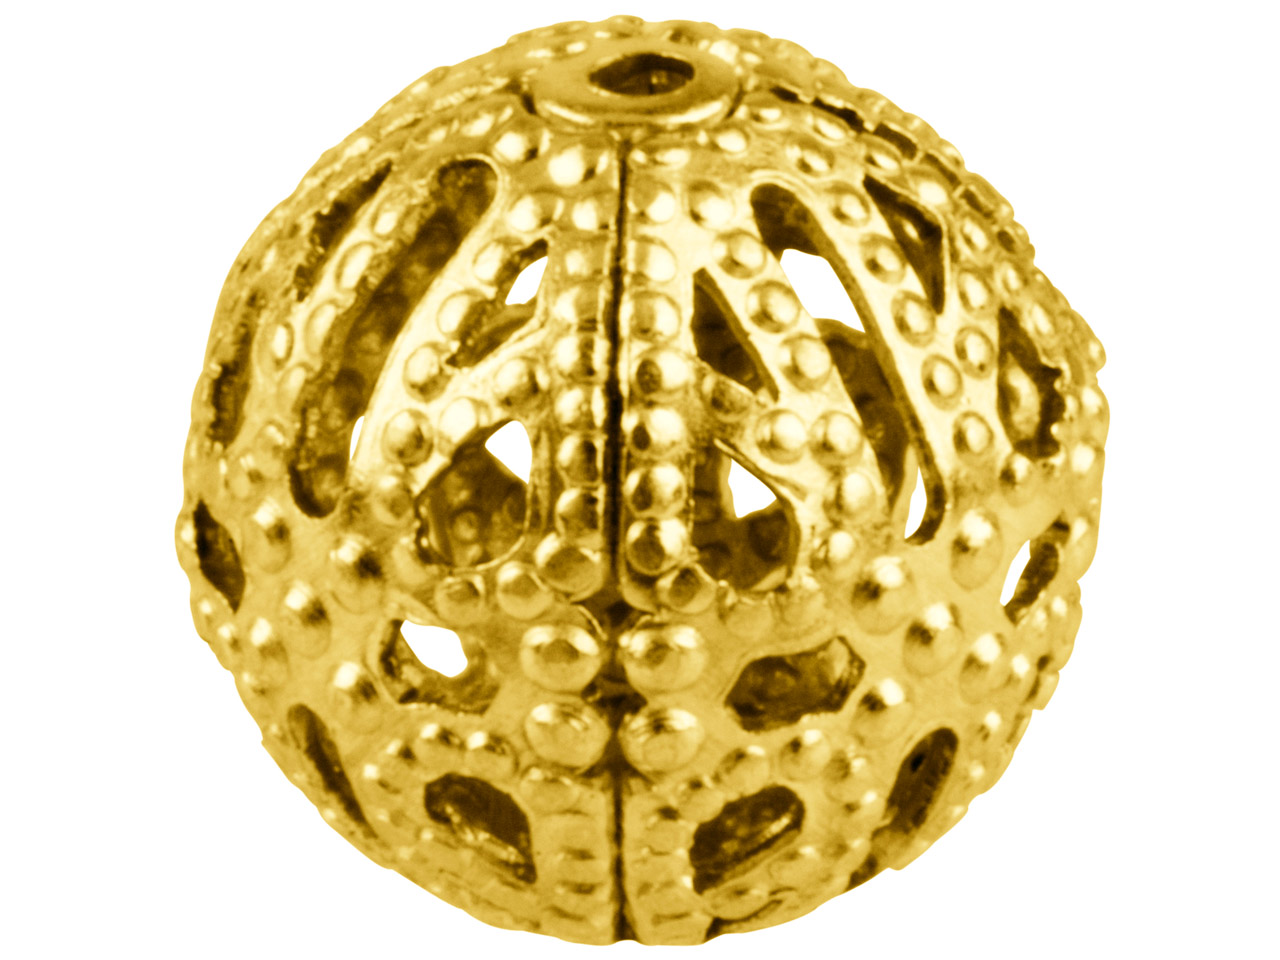 Gold Plated Filigree Beads 10mm    Round Pack of 10